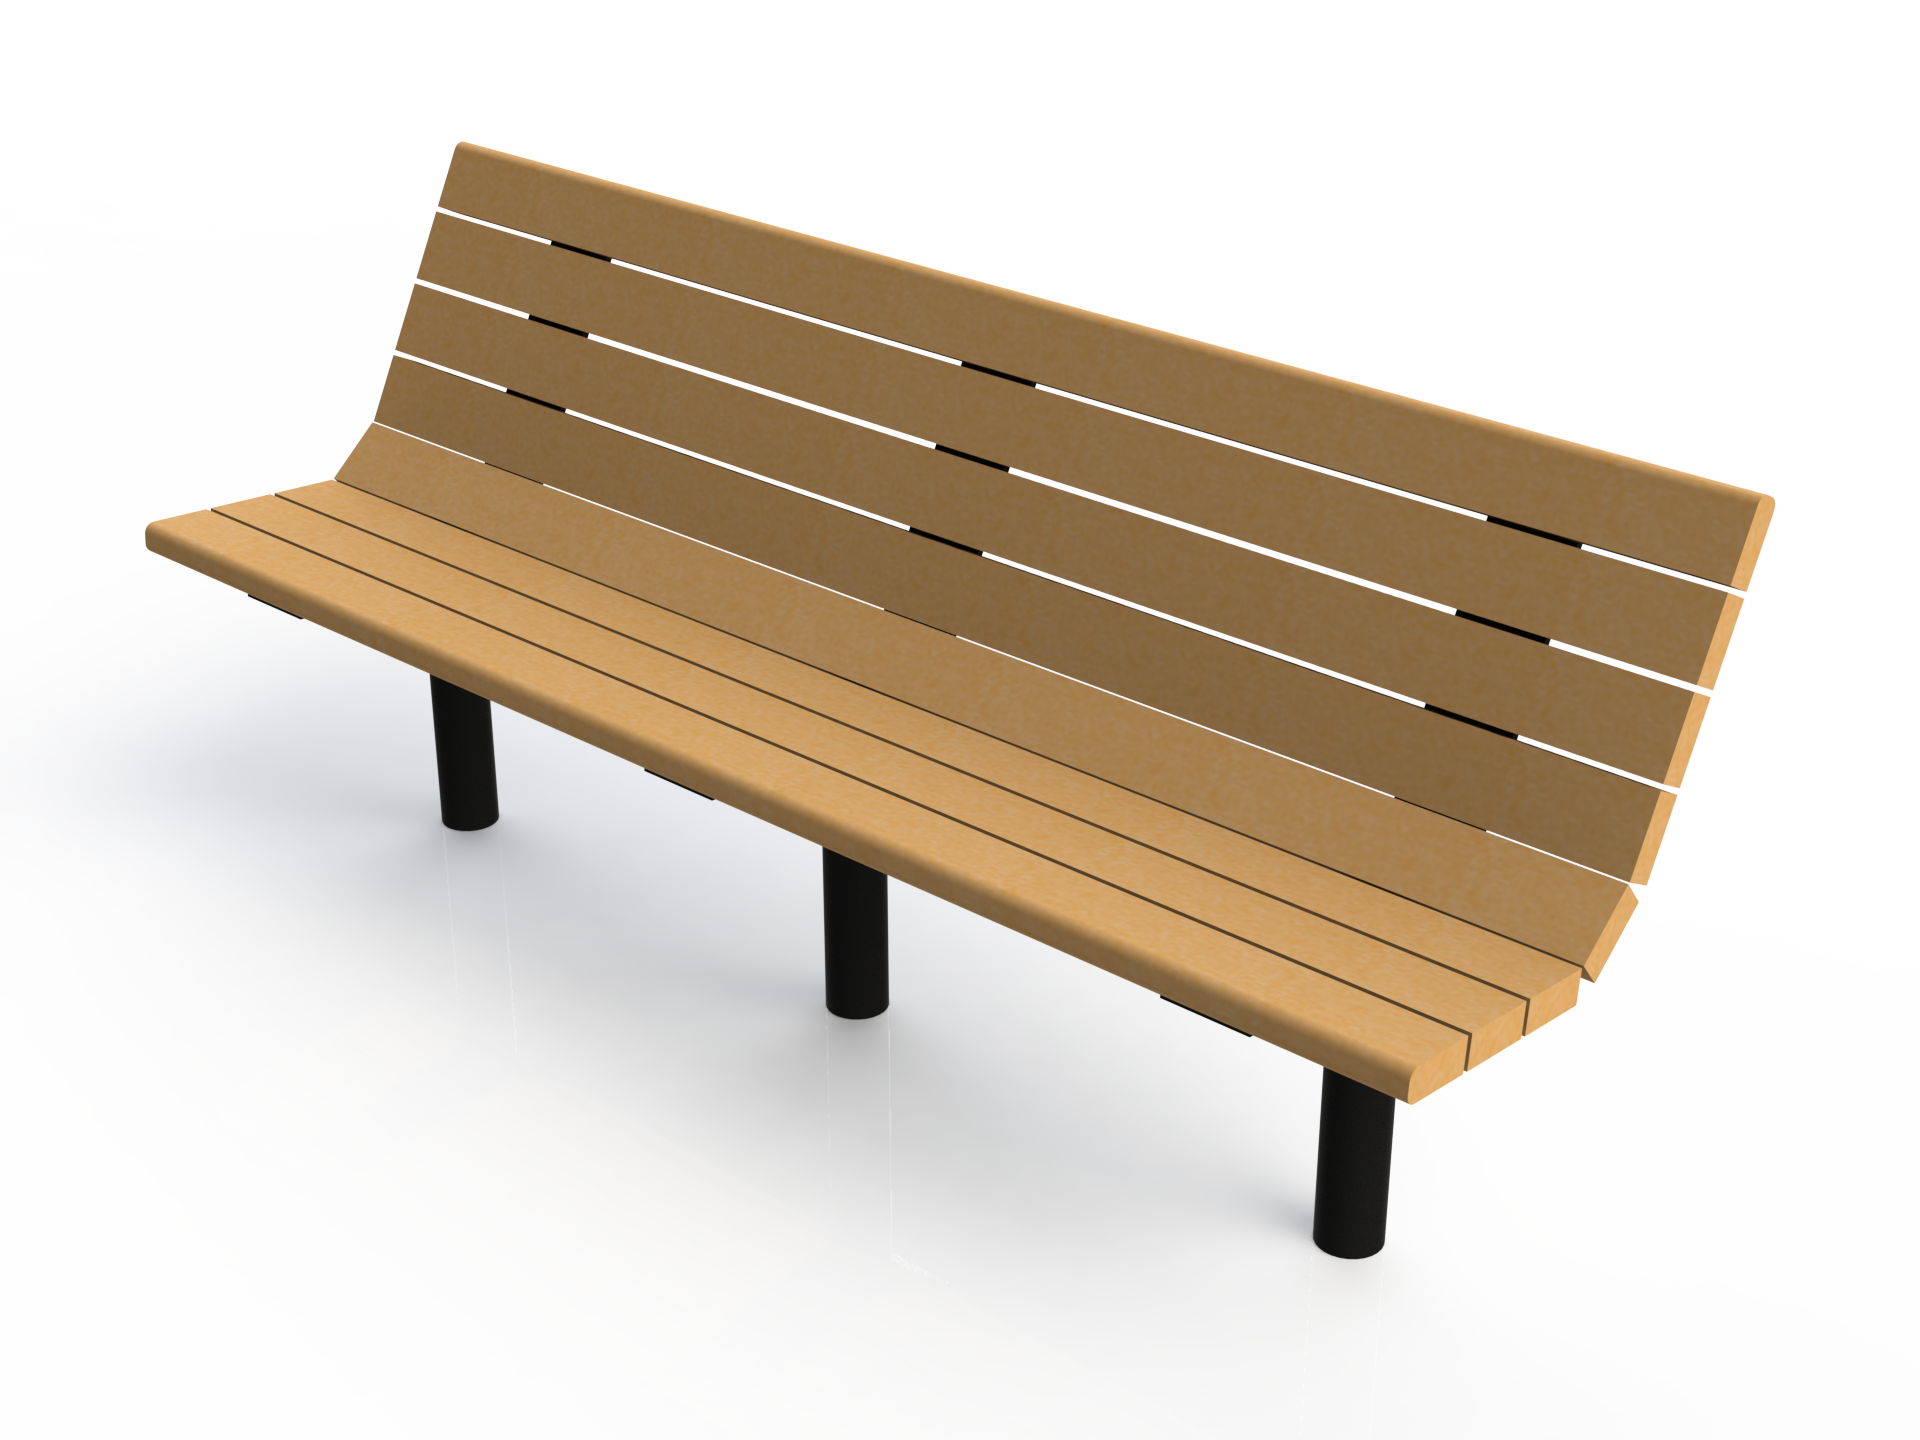 School Bench Png Transparent School Bench Png Images